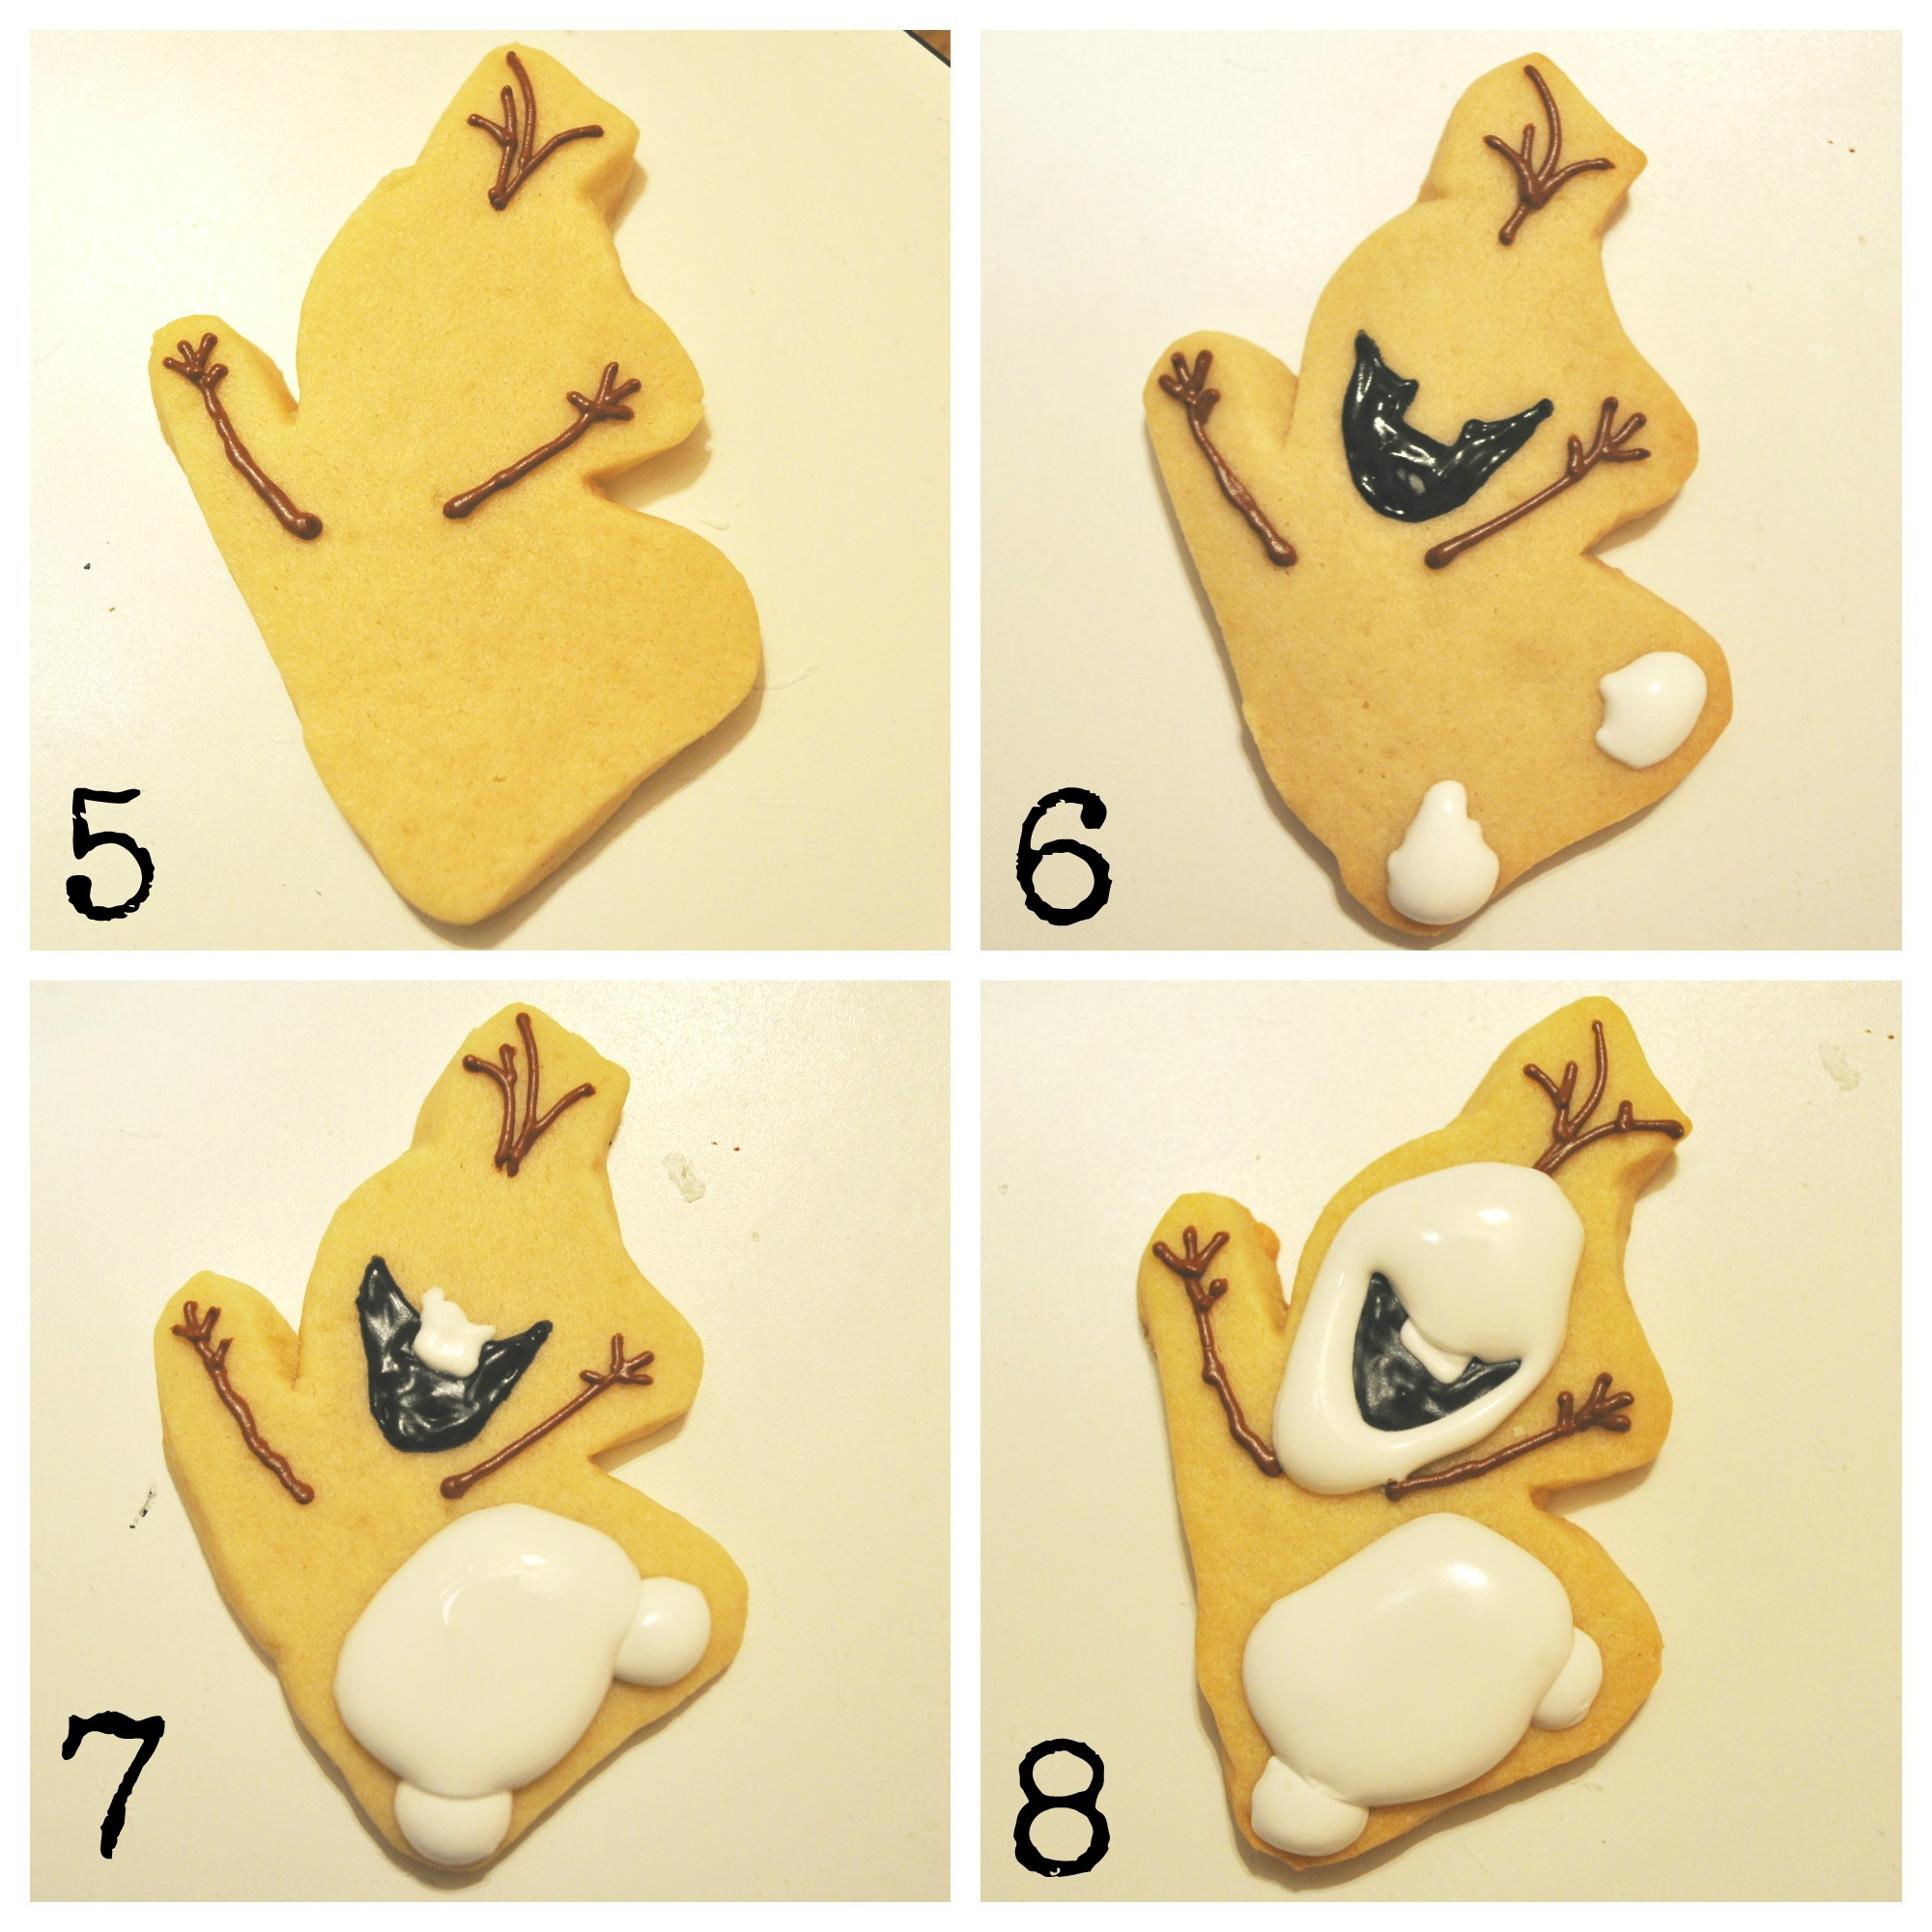 ... to Make Disney Frozen Cookies – How to Make Olaf Cookies | Suz Daily